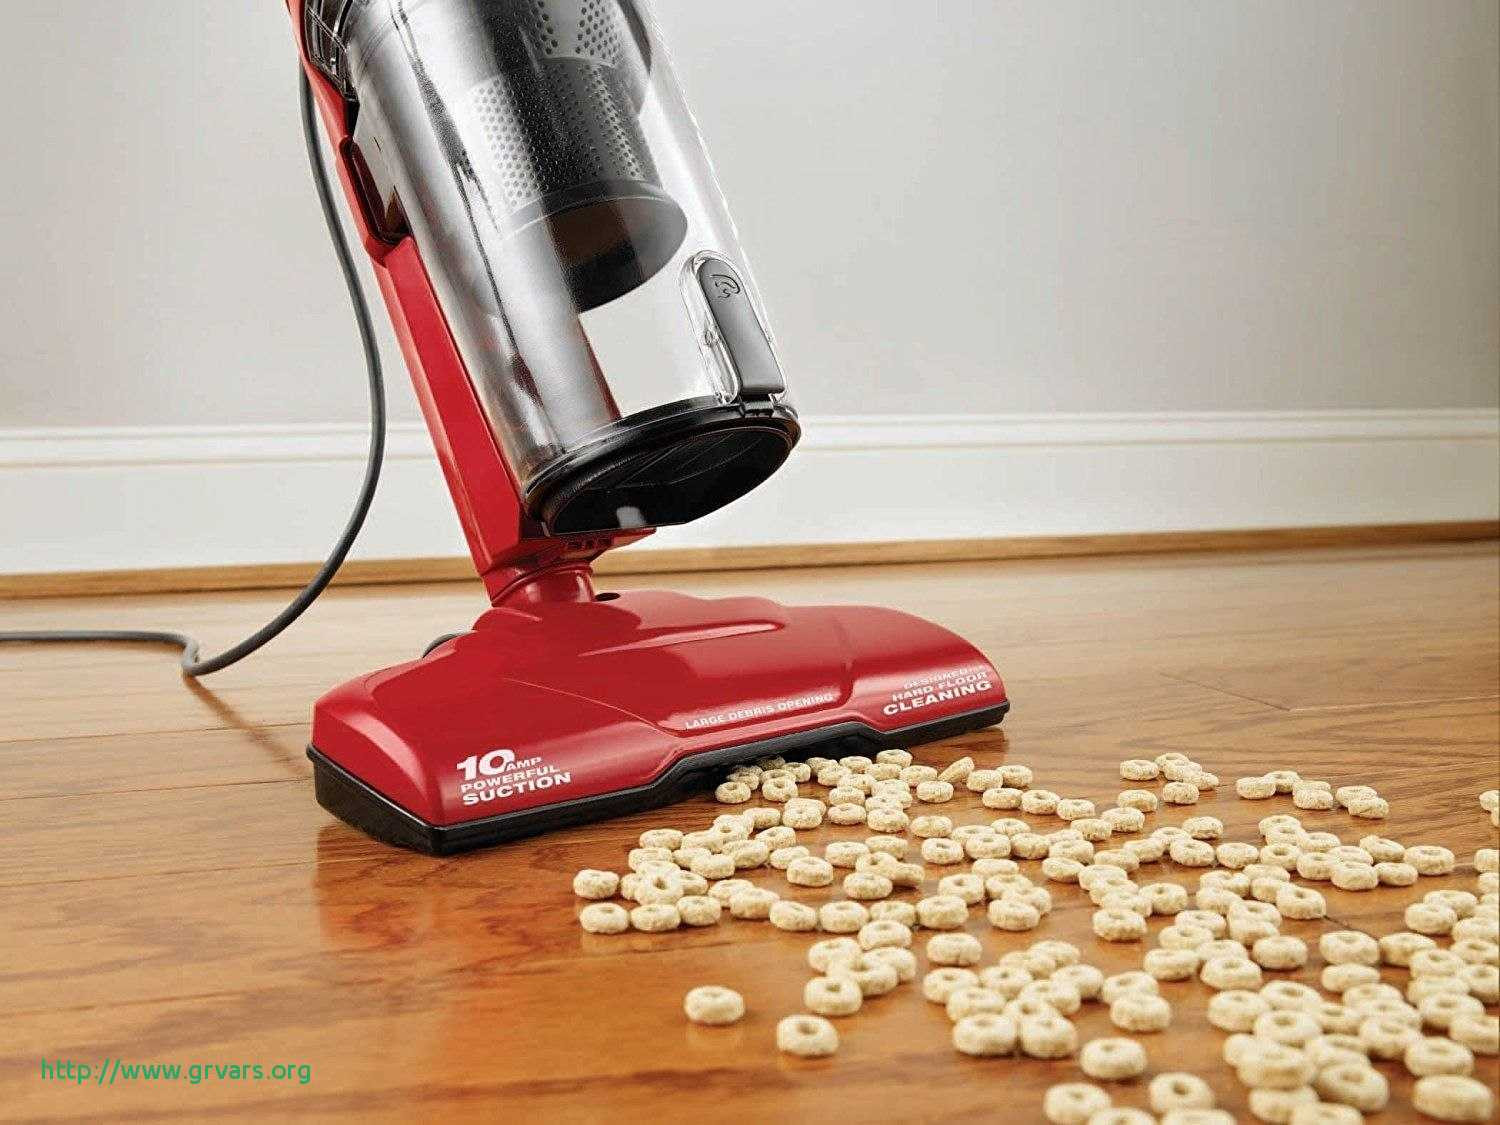 Vacuum Cleaner for Pet Hair On Hardwood Floors Of 15 Inspirant Best Vaccum for Hardwood Floors Ideas Blog within Best Bagless Vacuum for Hardwood Floors Elegant Hardwood Floor Cleaning Hard Floor Vacuum Best Hardwood Floor